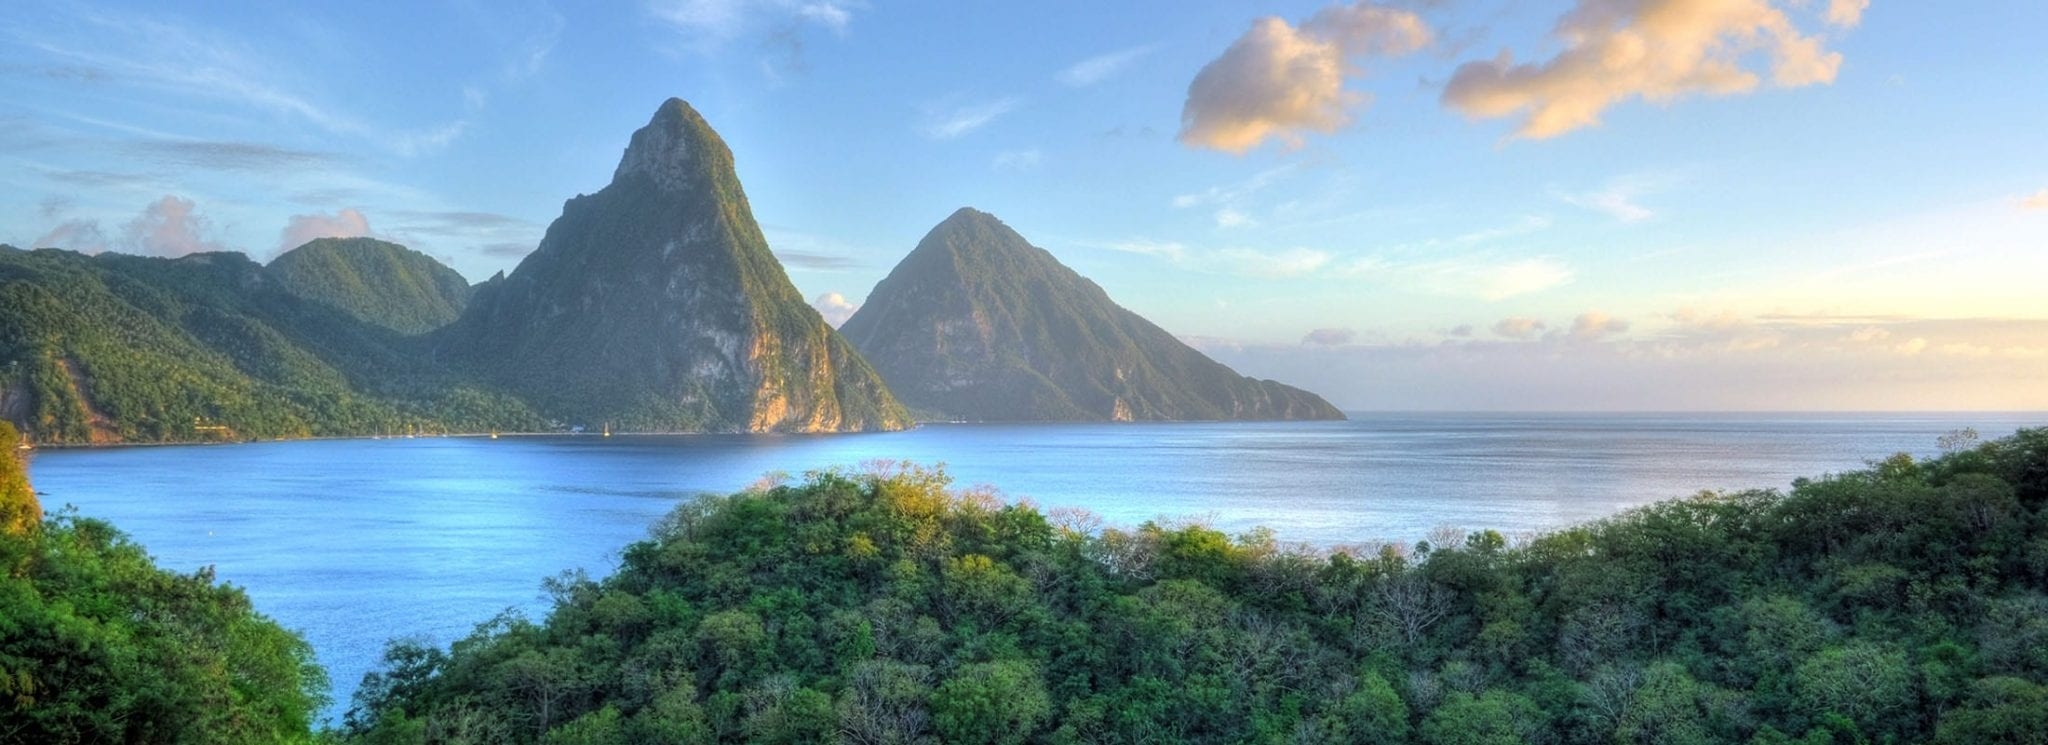 how to get to st lucia from australia